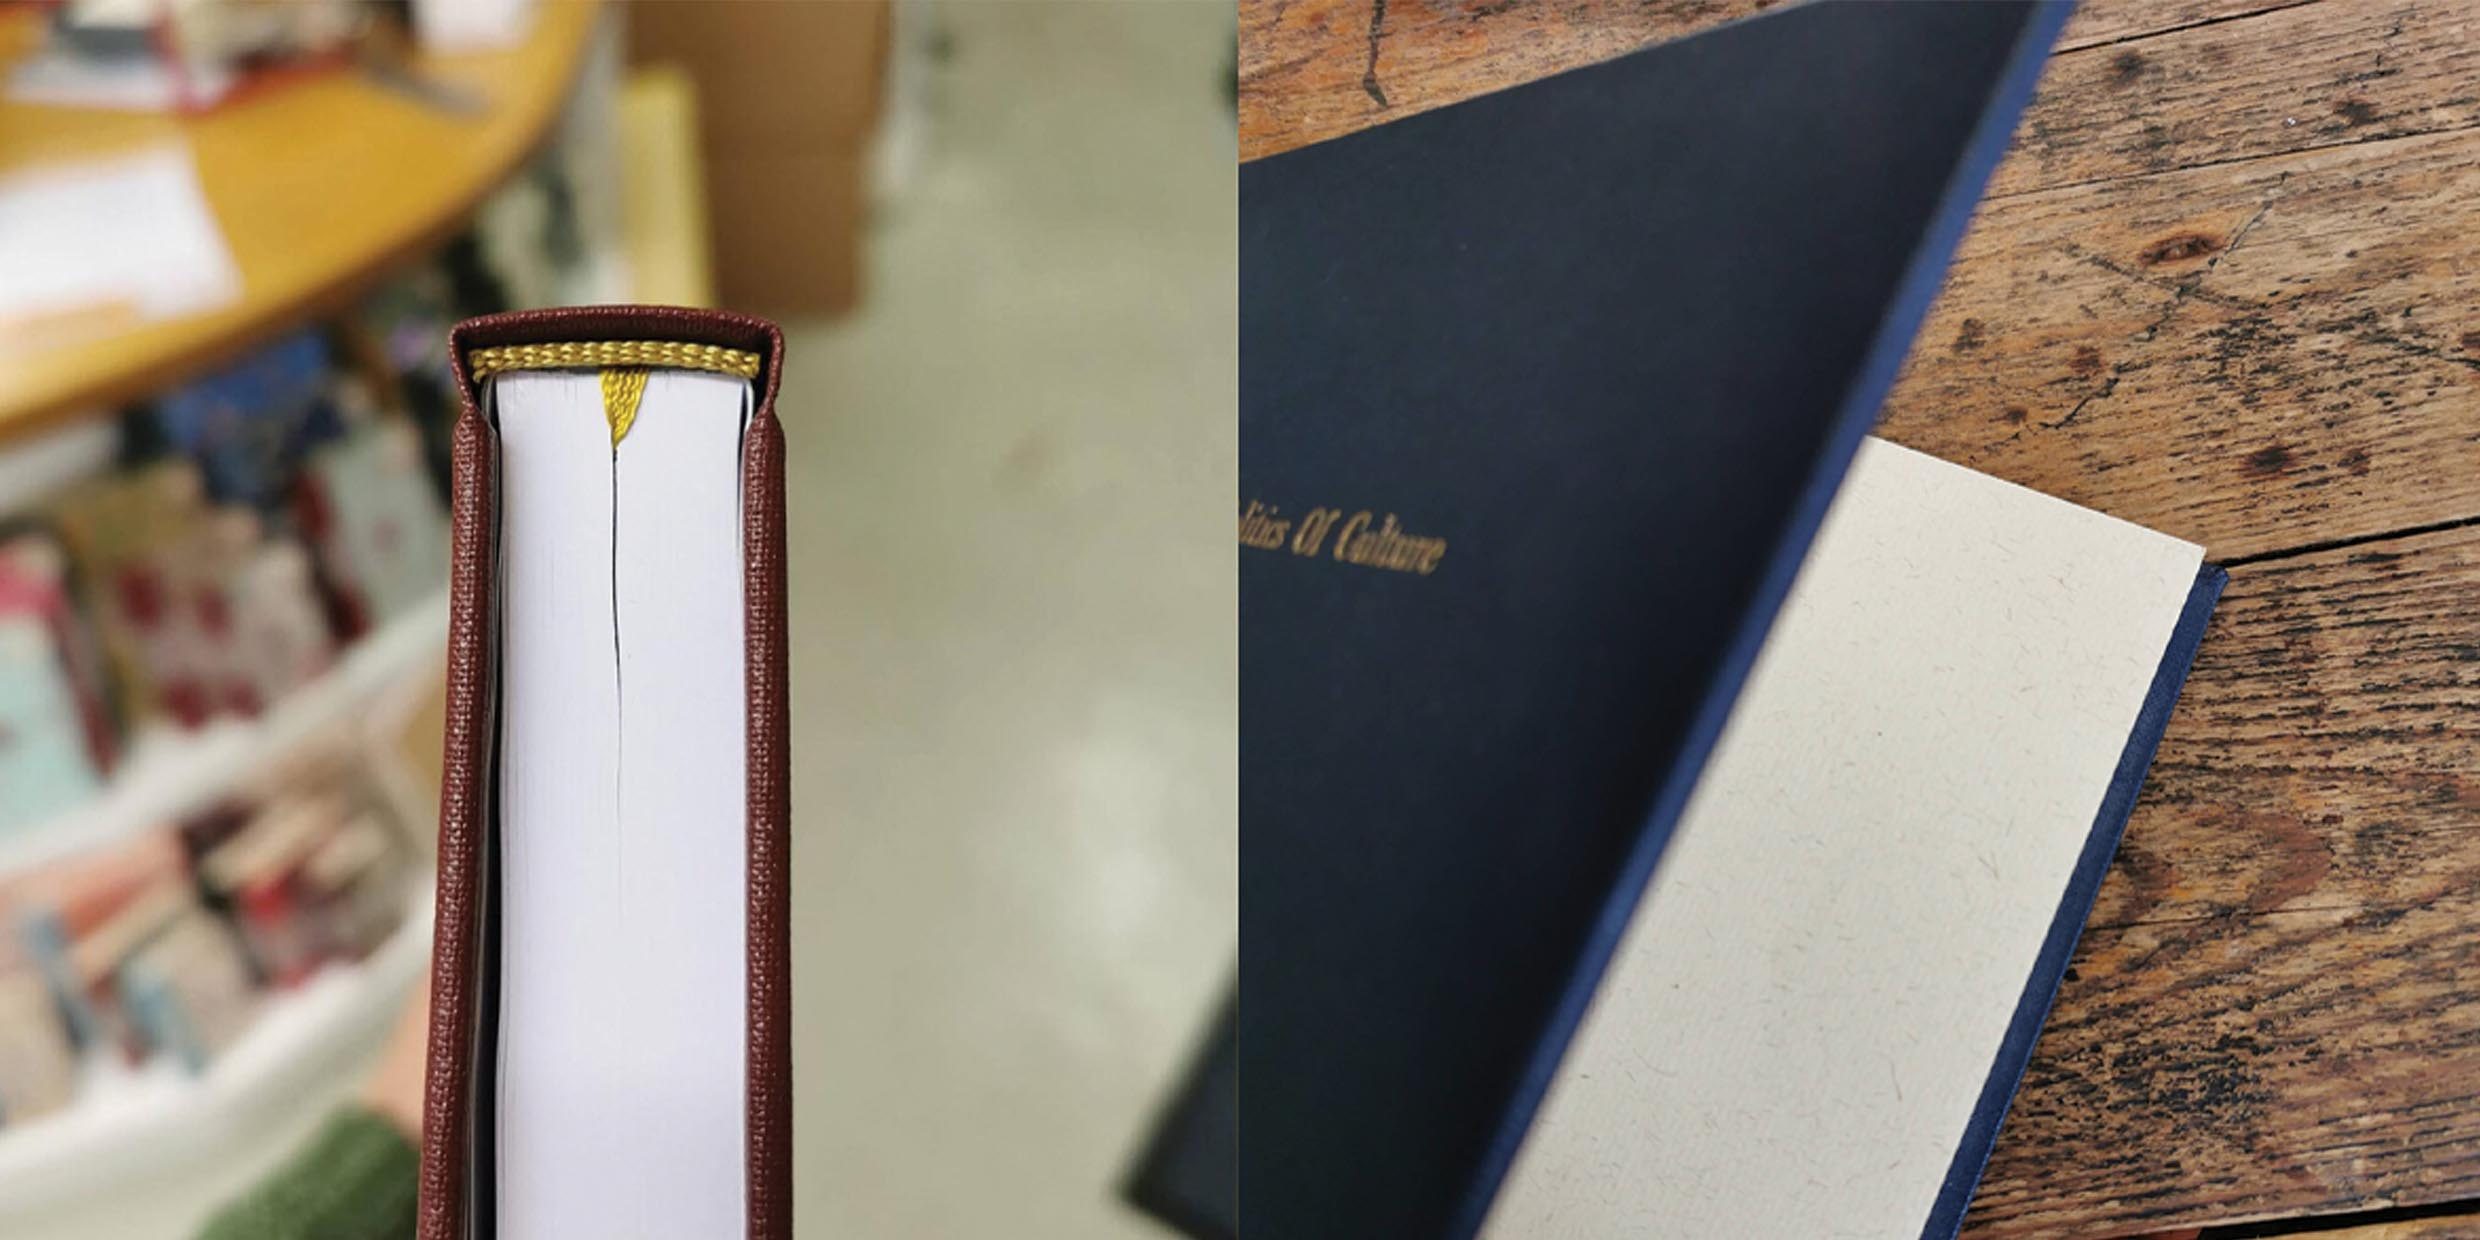 Add a luxury finish to your thesis with Headbands, ribbon page marker and textured endpapers. Handmade in Hubert Bookbindery Cork